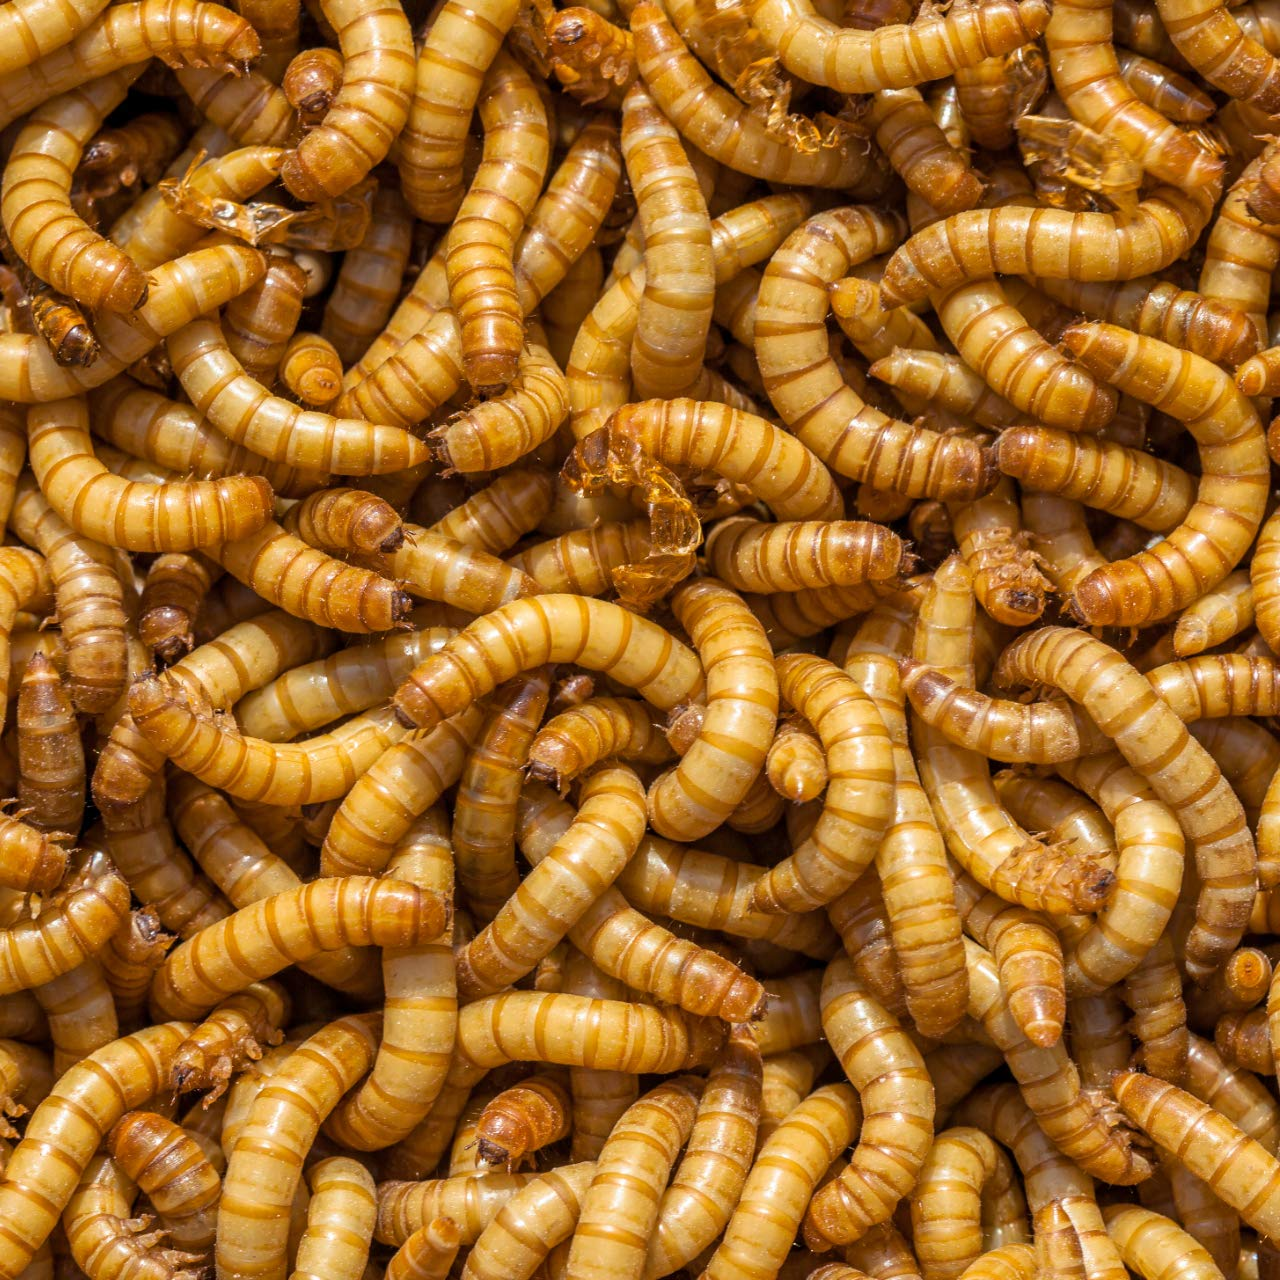 DBDPet Organically Grown Bulk Premium 3/4'' Live Mealworms 2,002ct - Reptiles, Leopard Geckos, Small Geckos, Chickens, Fishing, Wild Blue Birds, Wild Birds - Includes a Caresheet by DBDPet